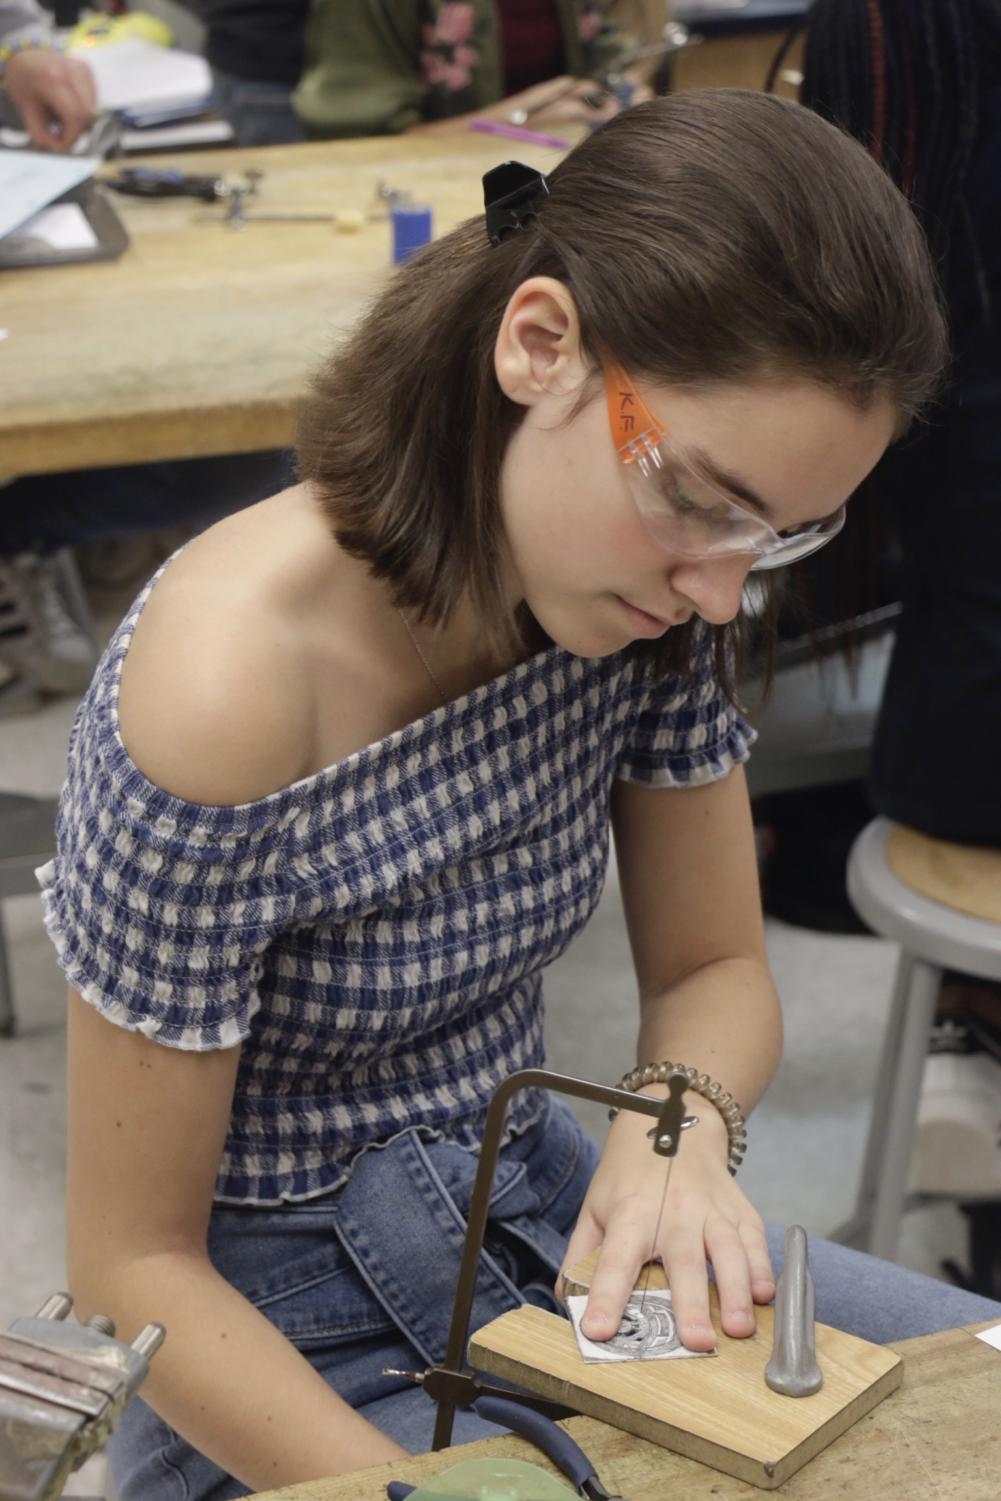 SERIOUS+SAWING%3A+Jewelry+student+and+sophomore+Kendall+Frobig+cuts+her+design+out+of+metal+with+a+saw+frame+in+the+jewelry+classroom+on+Oct.+28.+The+jewelry+piece+is+for+the+Culture+of+Care+week+project%2C+where+students+create+a+piece+to+give+to+someone+who+inspires+them.+Frobig+said%2C+%E2%80%9CMy+take+away+from+this+class+is+that+there+are+so+many+ways+you+can+be+creative%2C+I+never+thought+I%E2%80%99d+be+working+with+metal+and+creating+wearable+pieces%2C+but+here+I+am.%E2%80%9D+